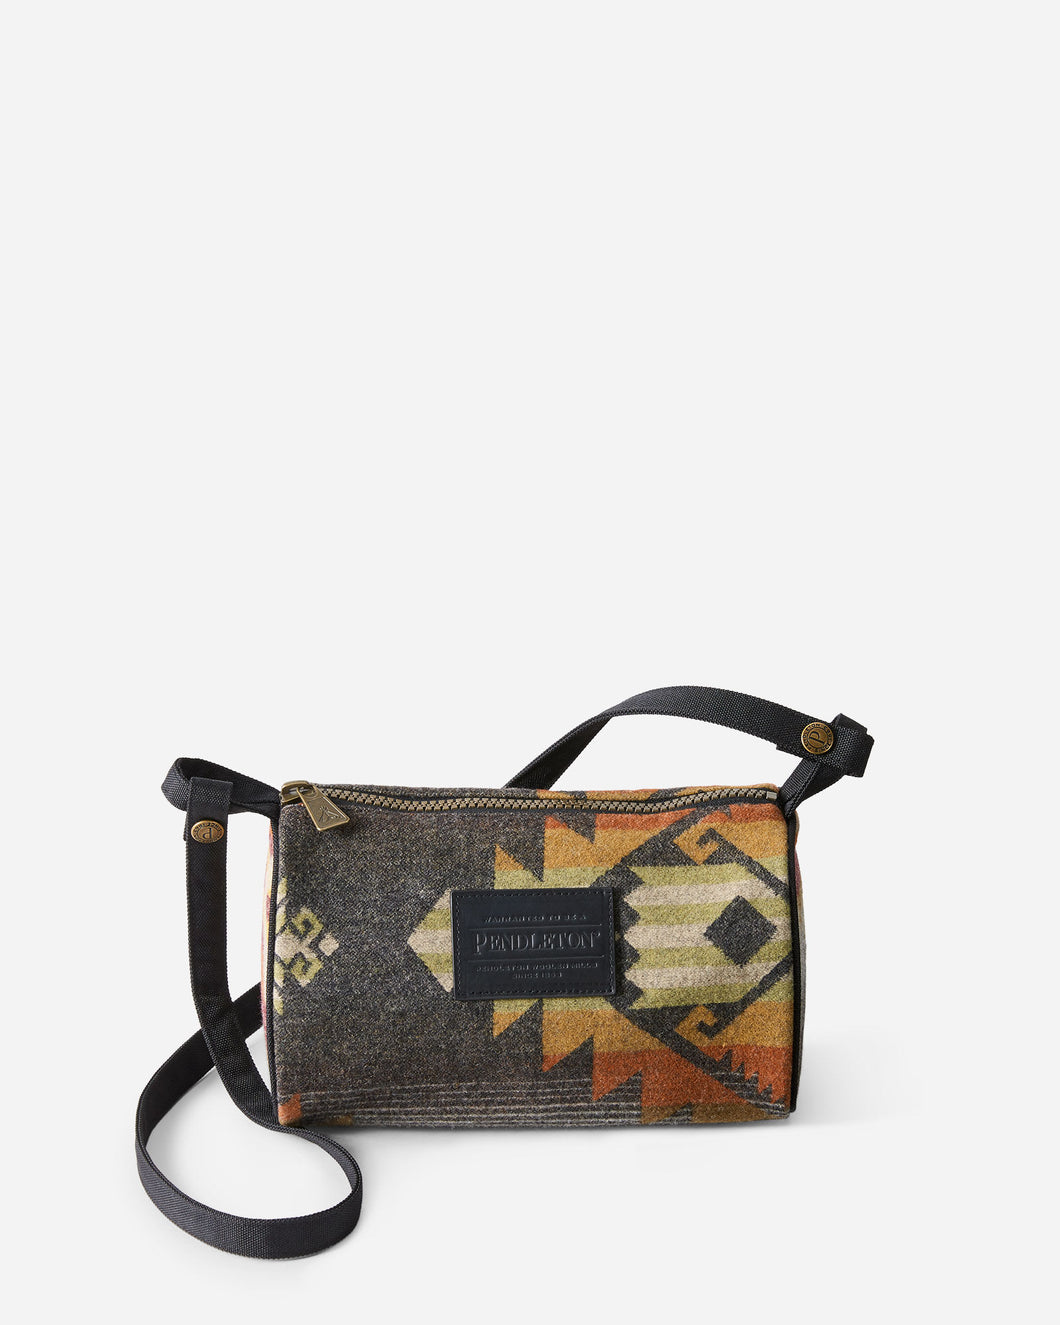 Pendleton Travel Kit with Strap Rock Creek